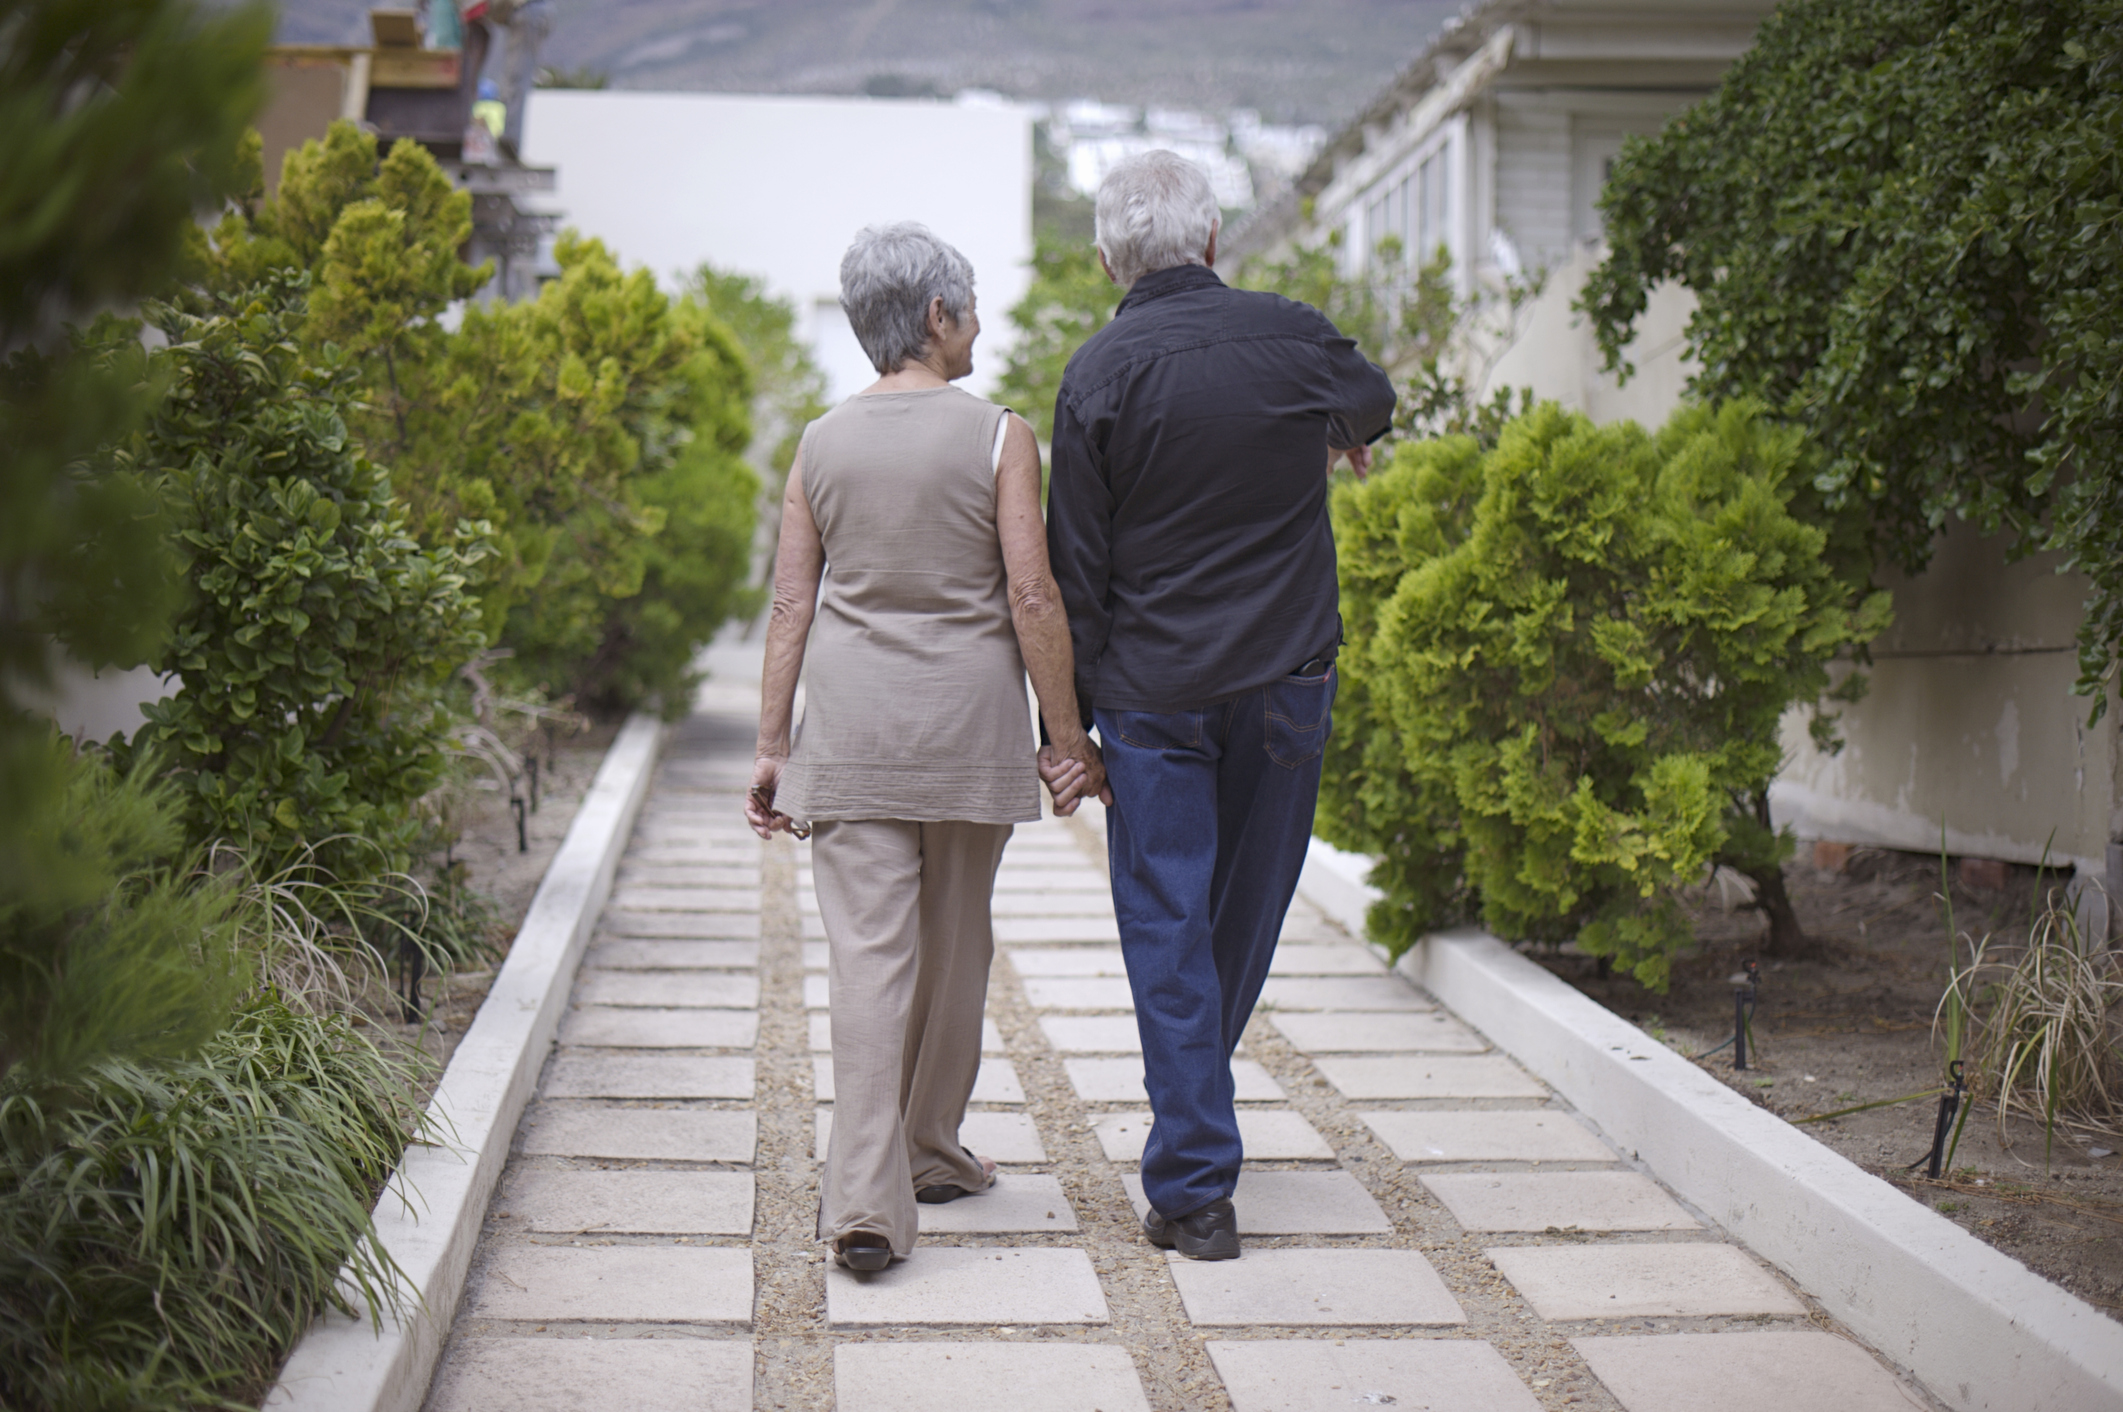 Elderly couple walking in garden. (Getty Images)